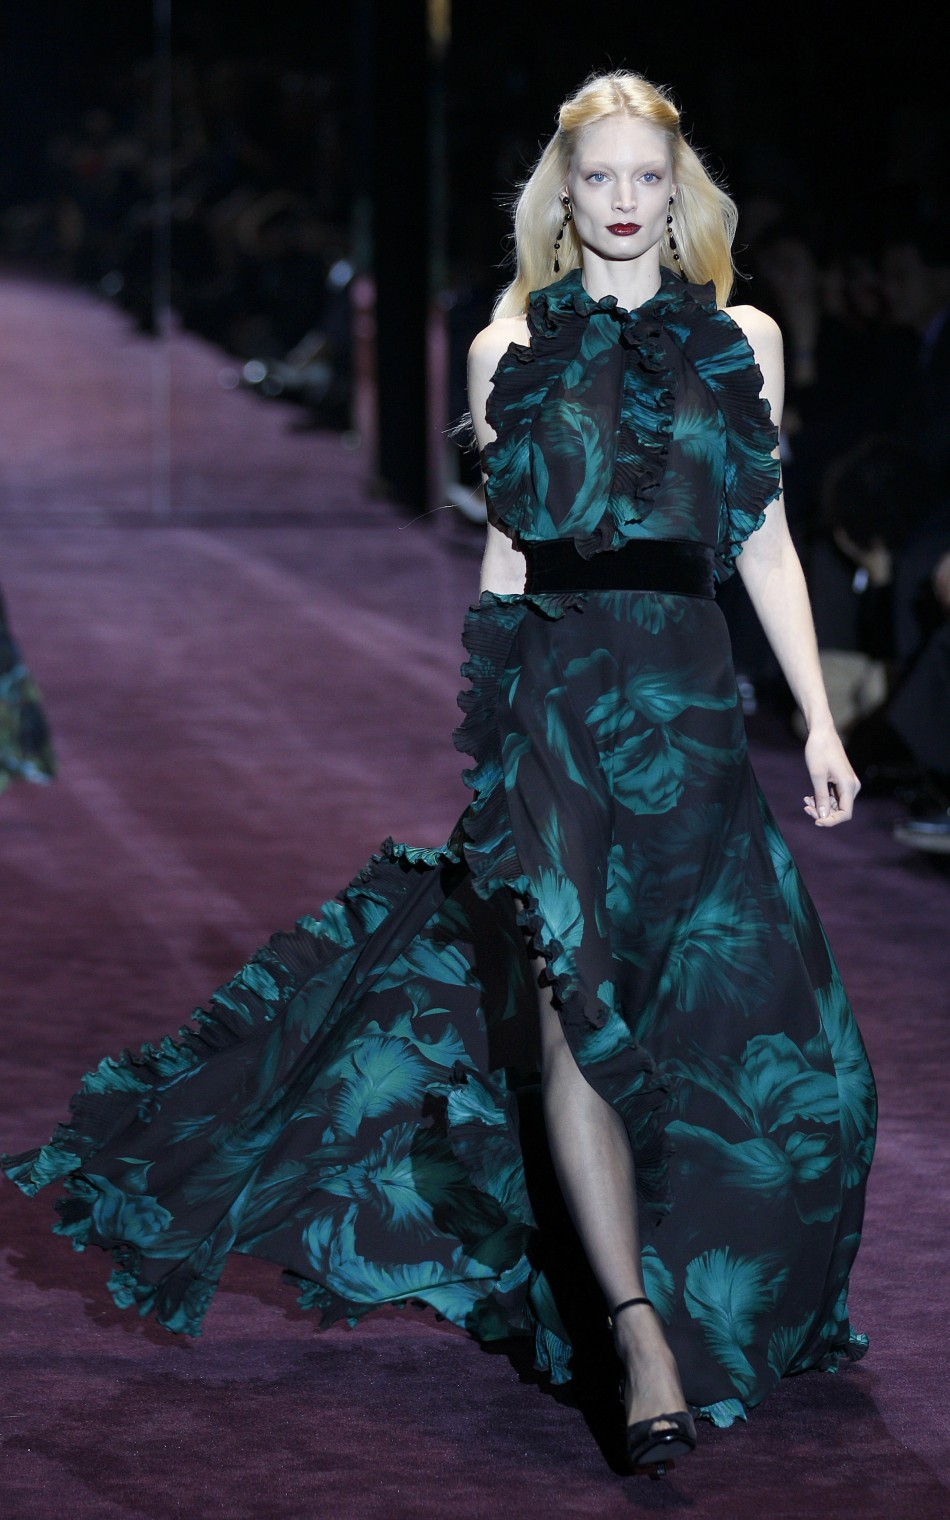 Gucci Kicks Off 2012 Milan Fashion Week with Dramatic 'Dark Romance' Line-up